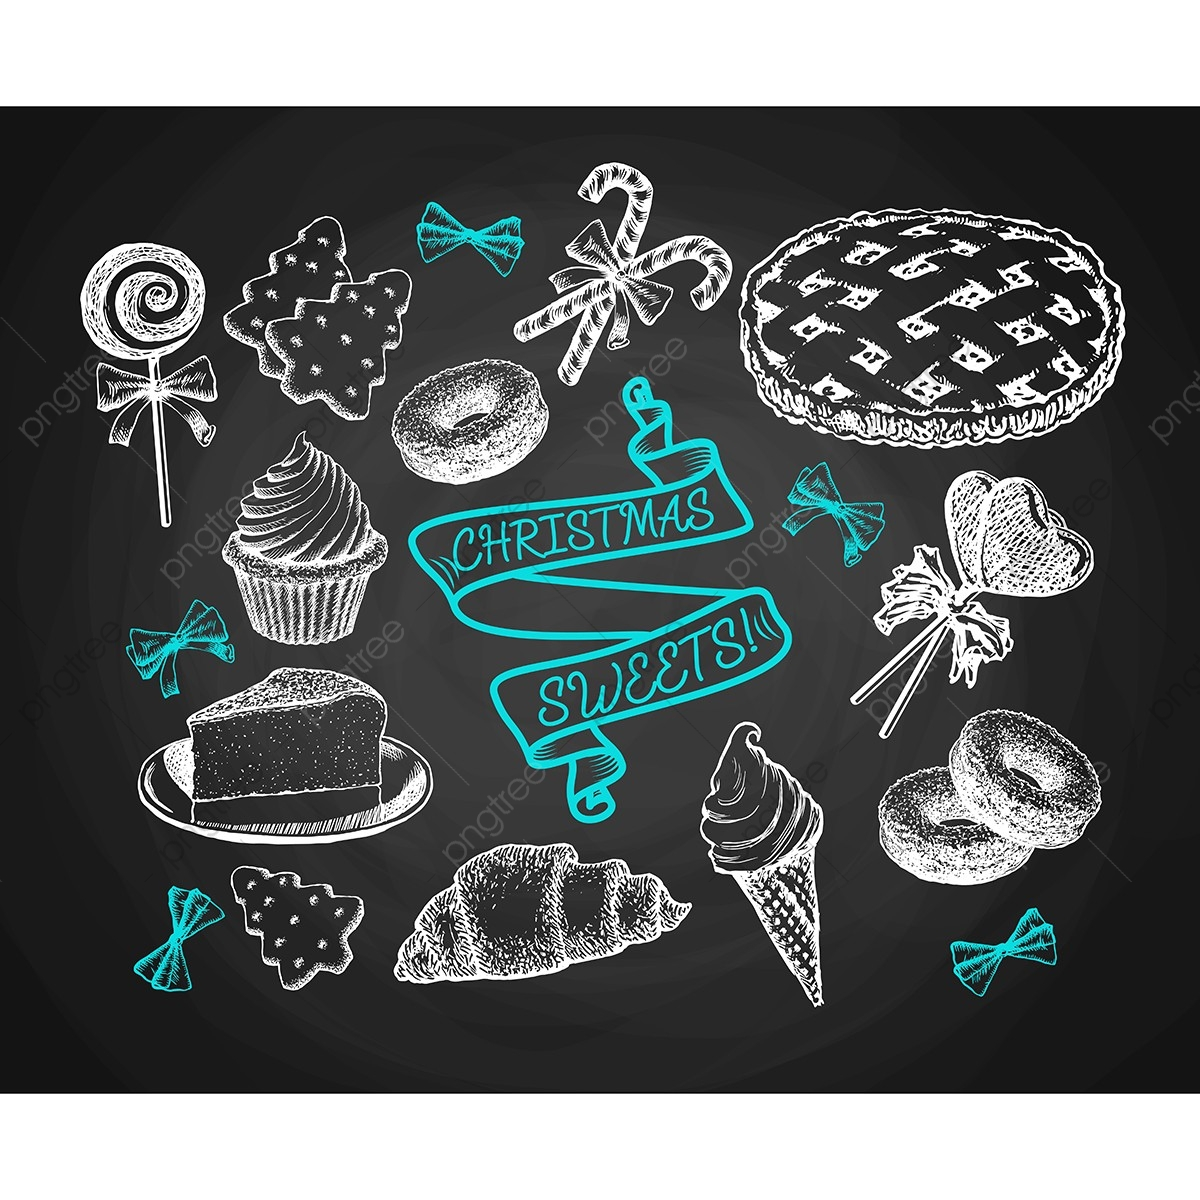 Sweets Set Sketch On Chalkboard Background, Christmas, Sweets.